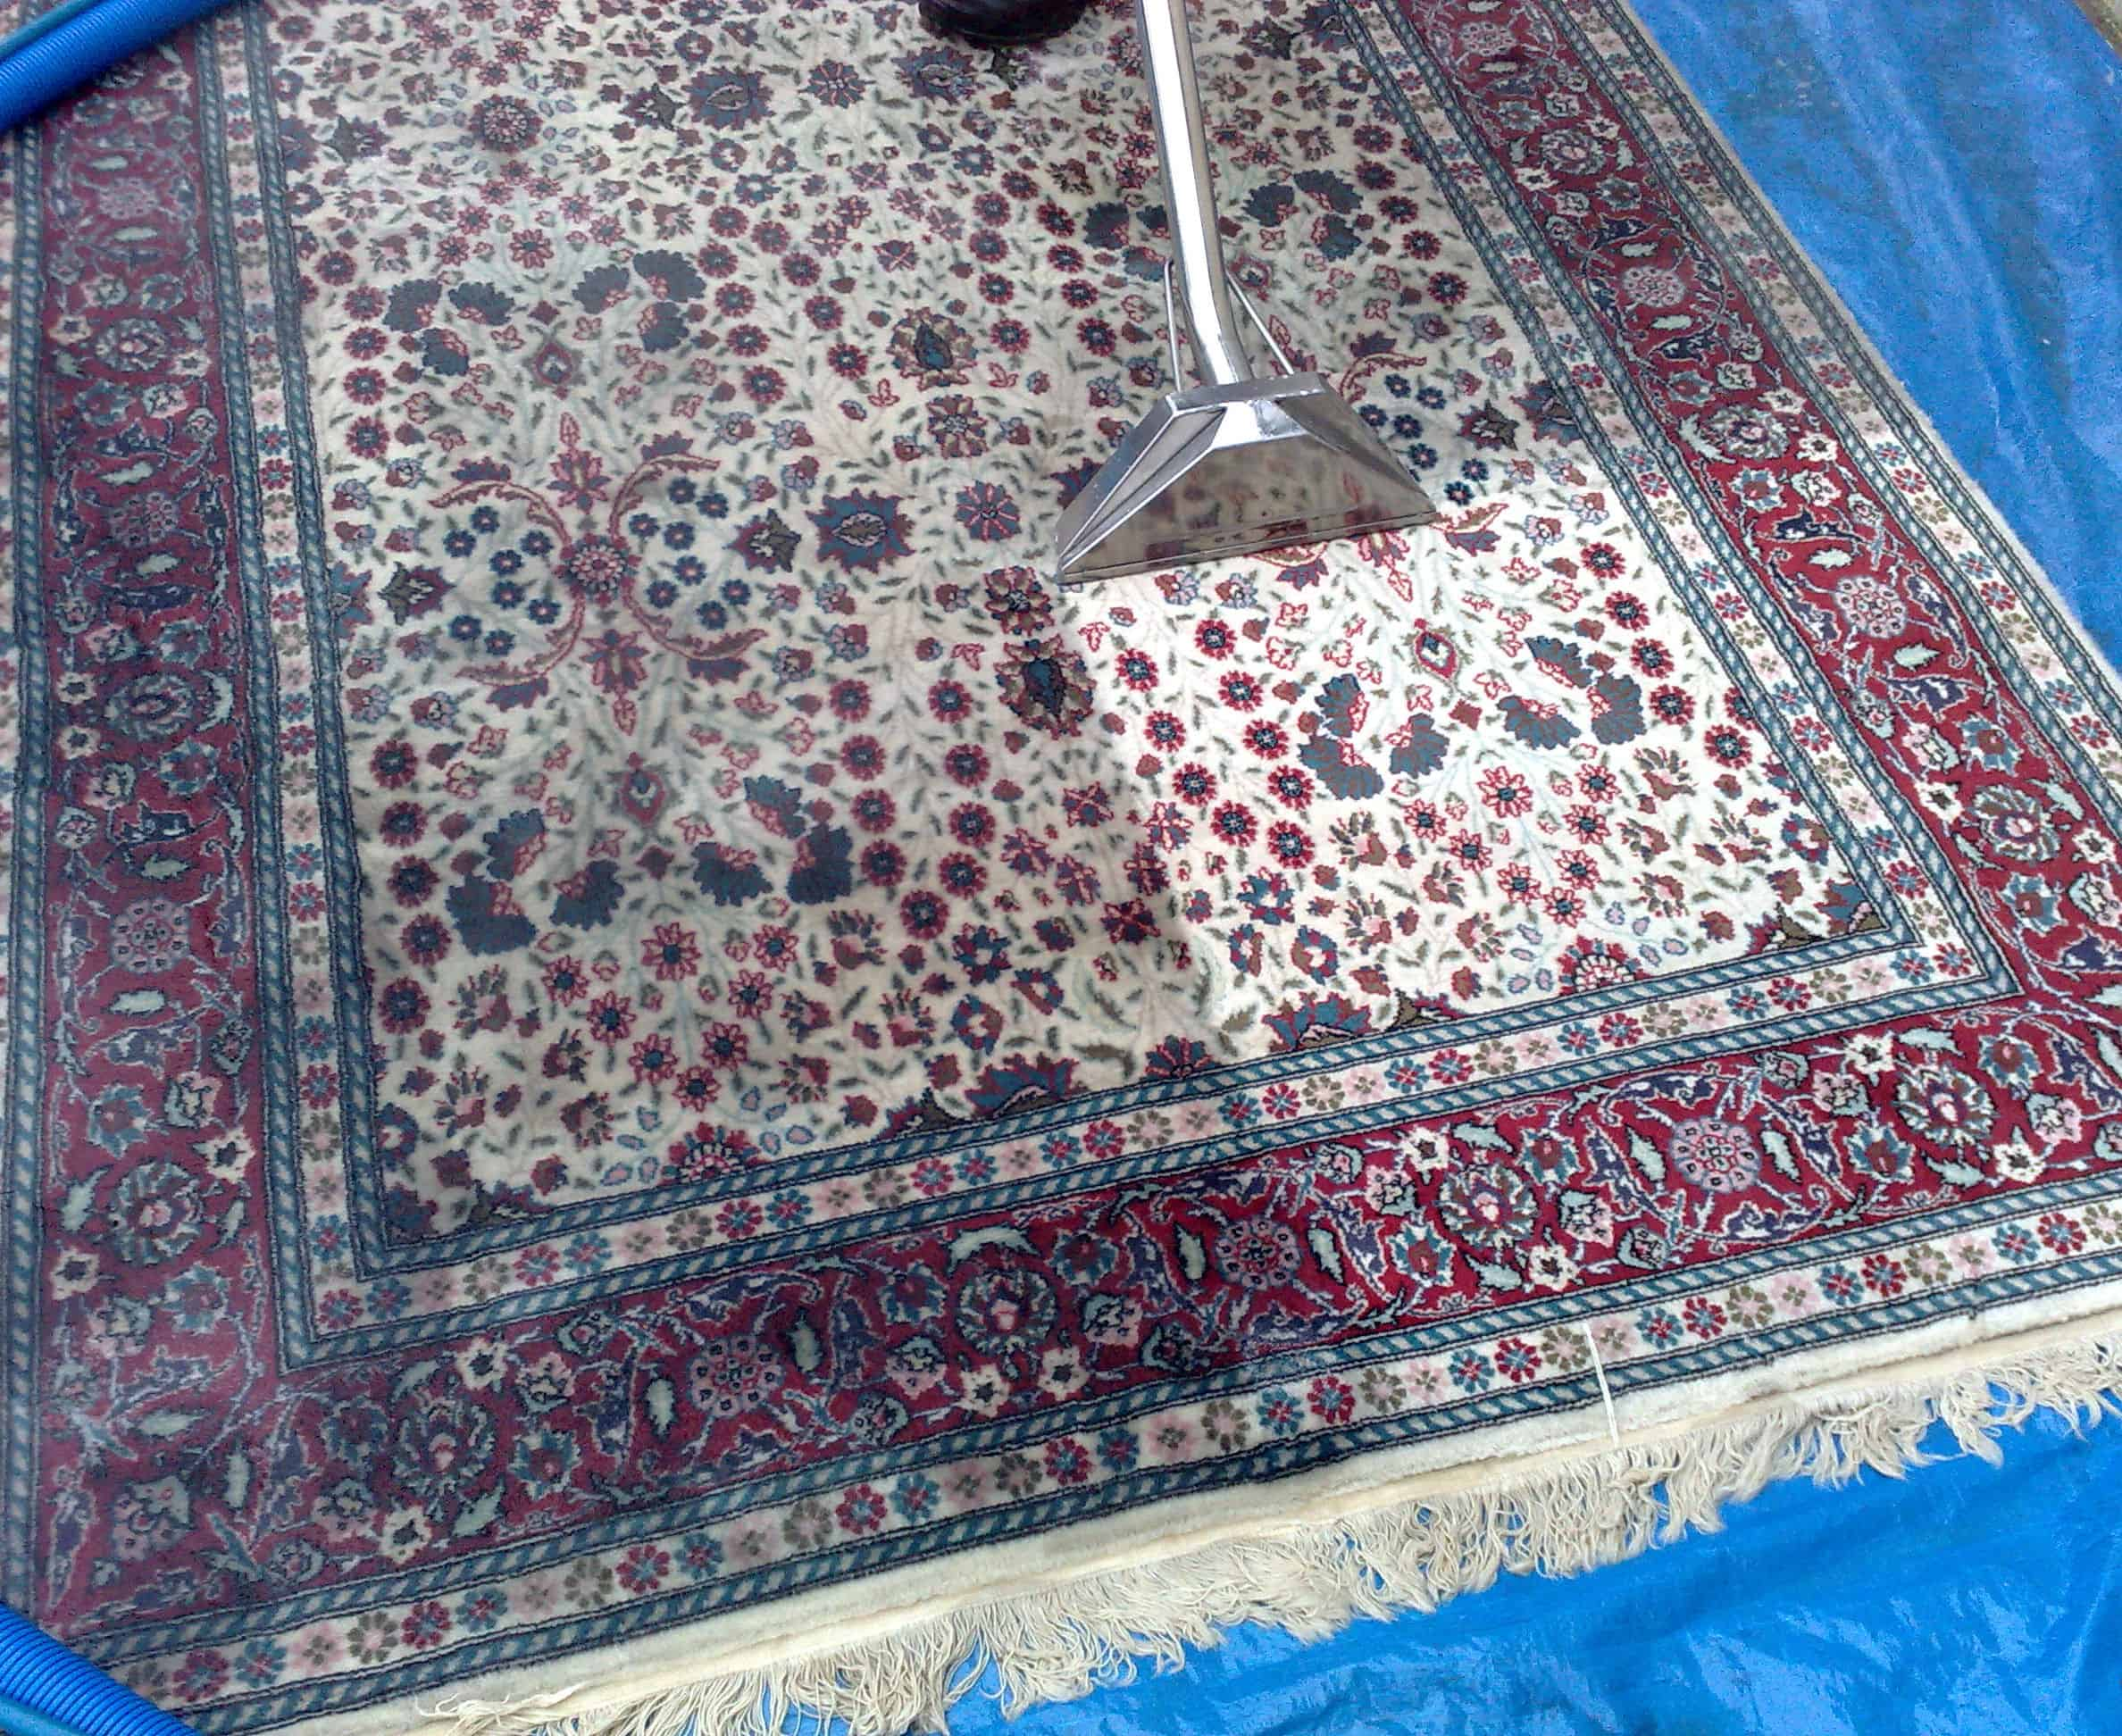 How Often Should Rugs Be Cleaned